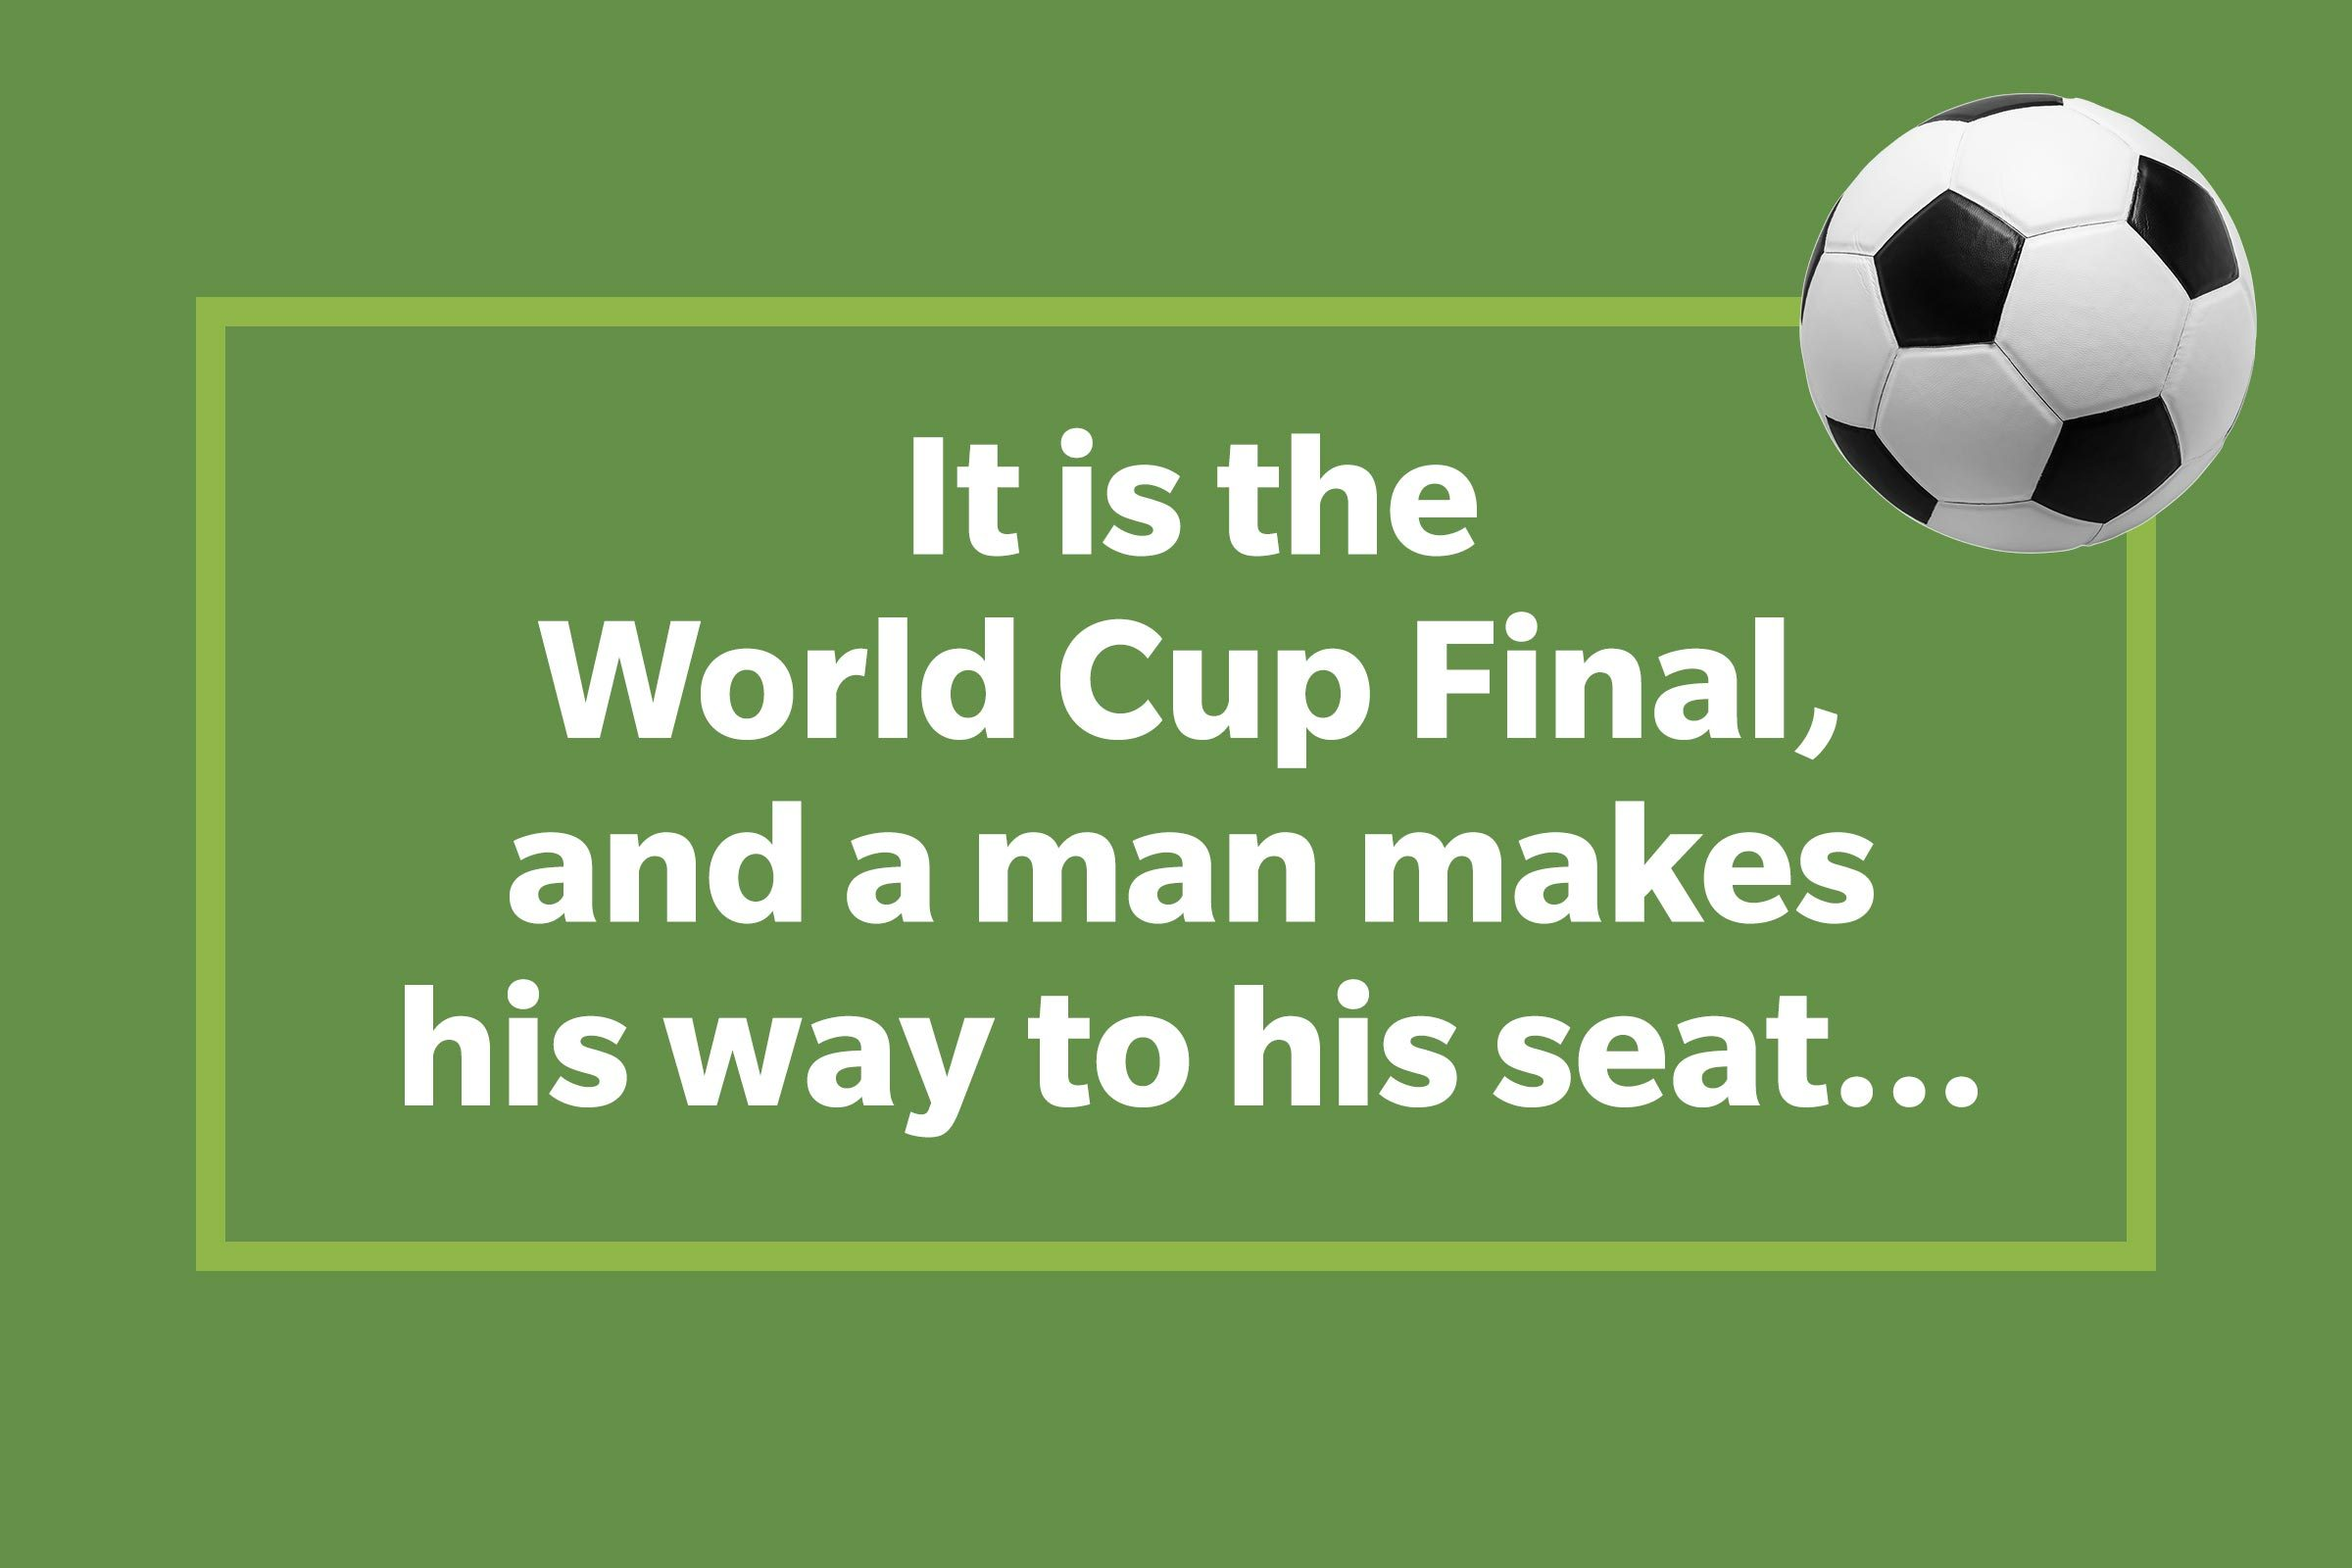 It's the World Cup Final, and a man makes his way to his seat...